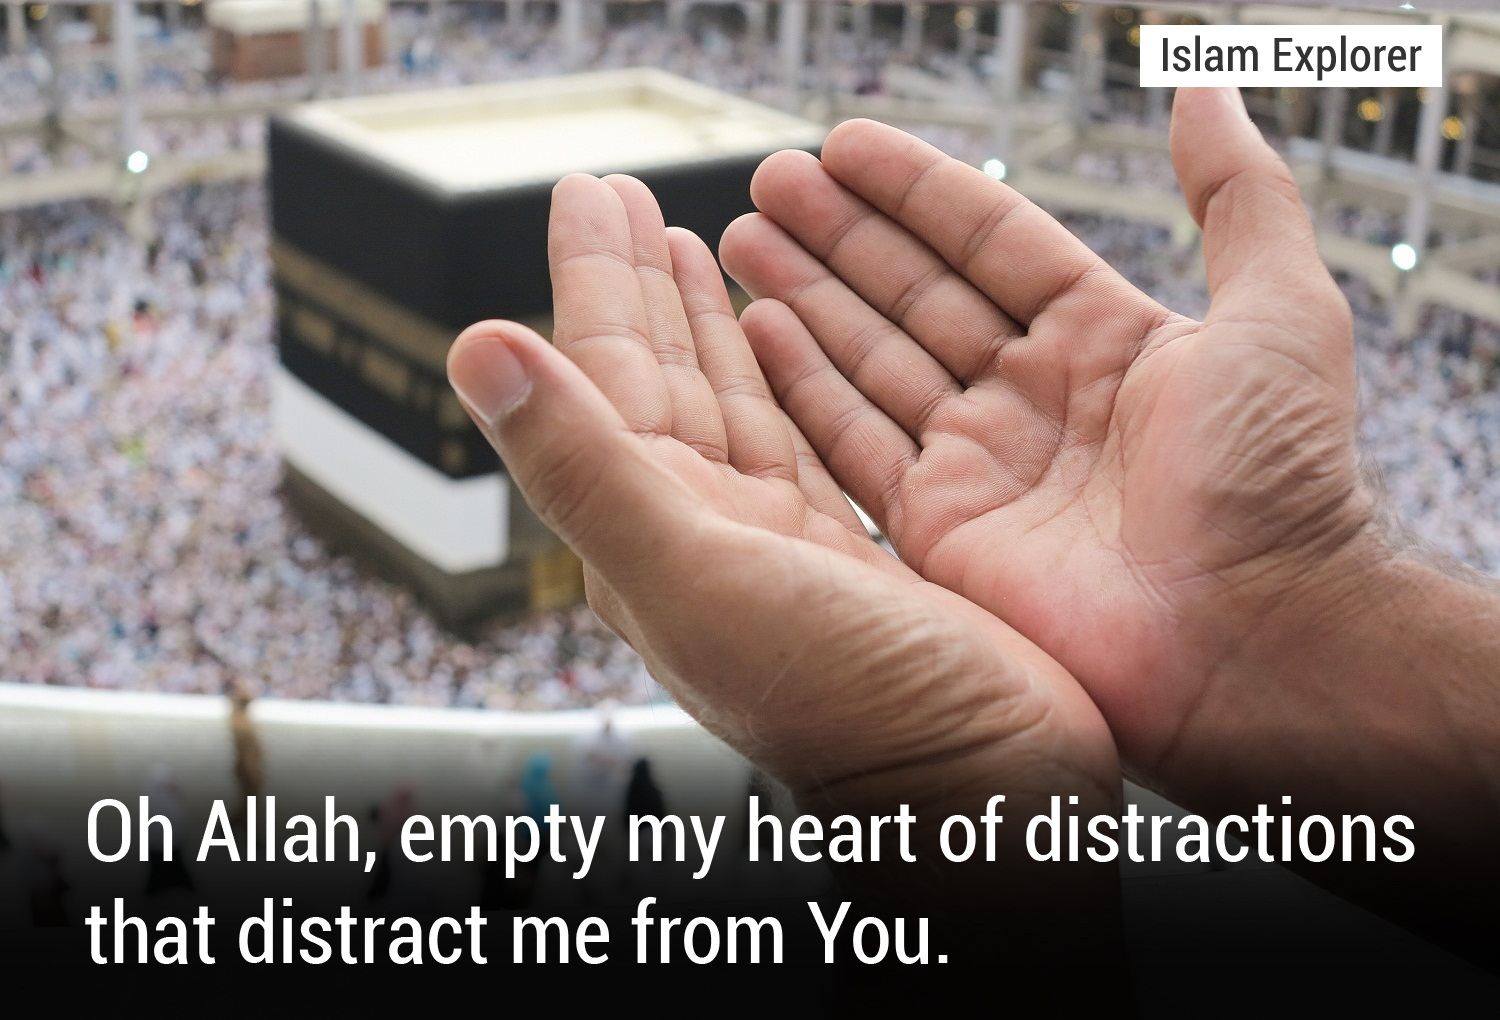 Oh Allah, empty my heart of distractions